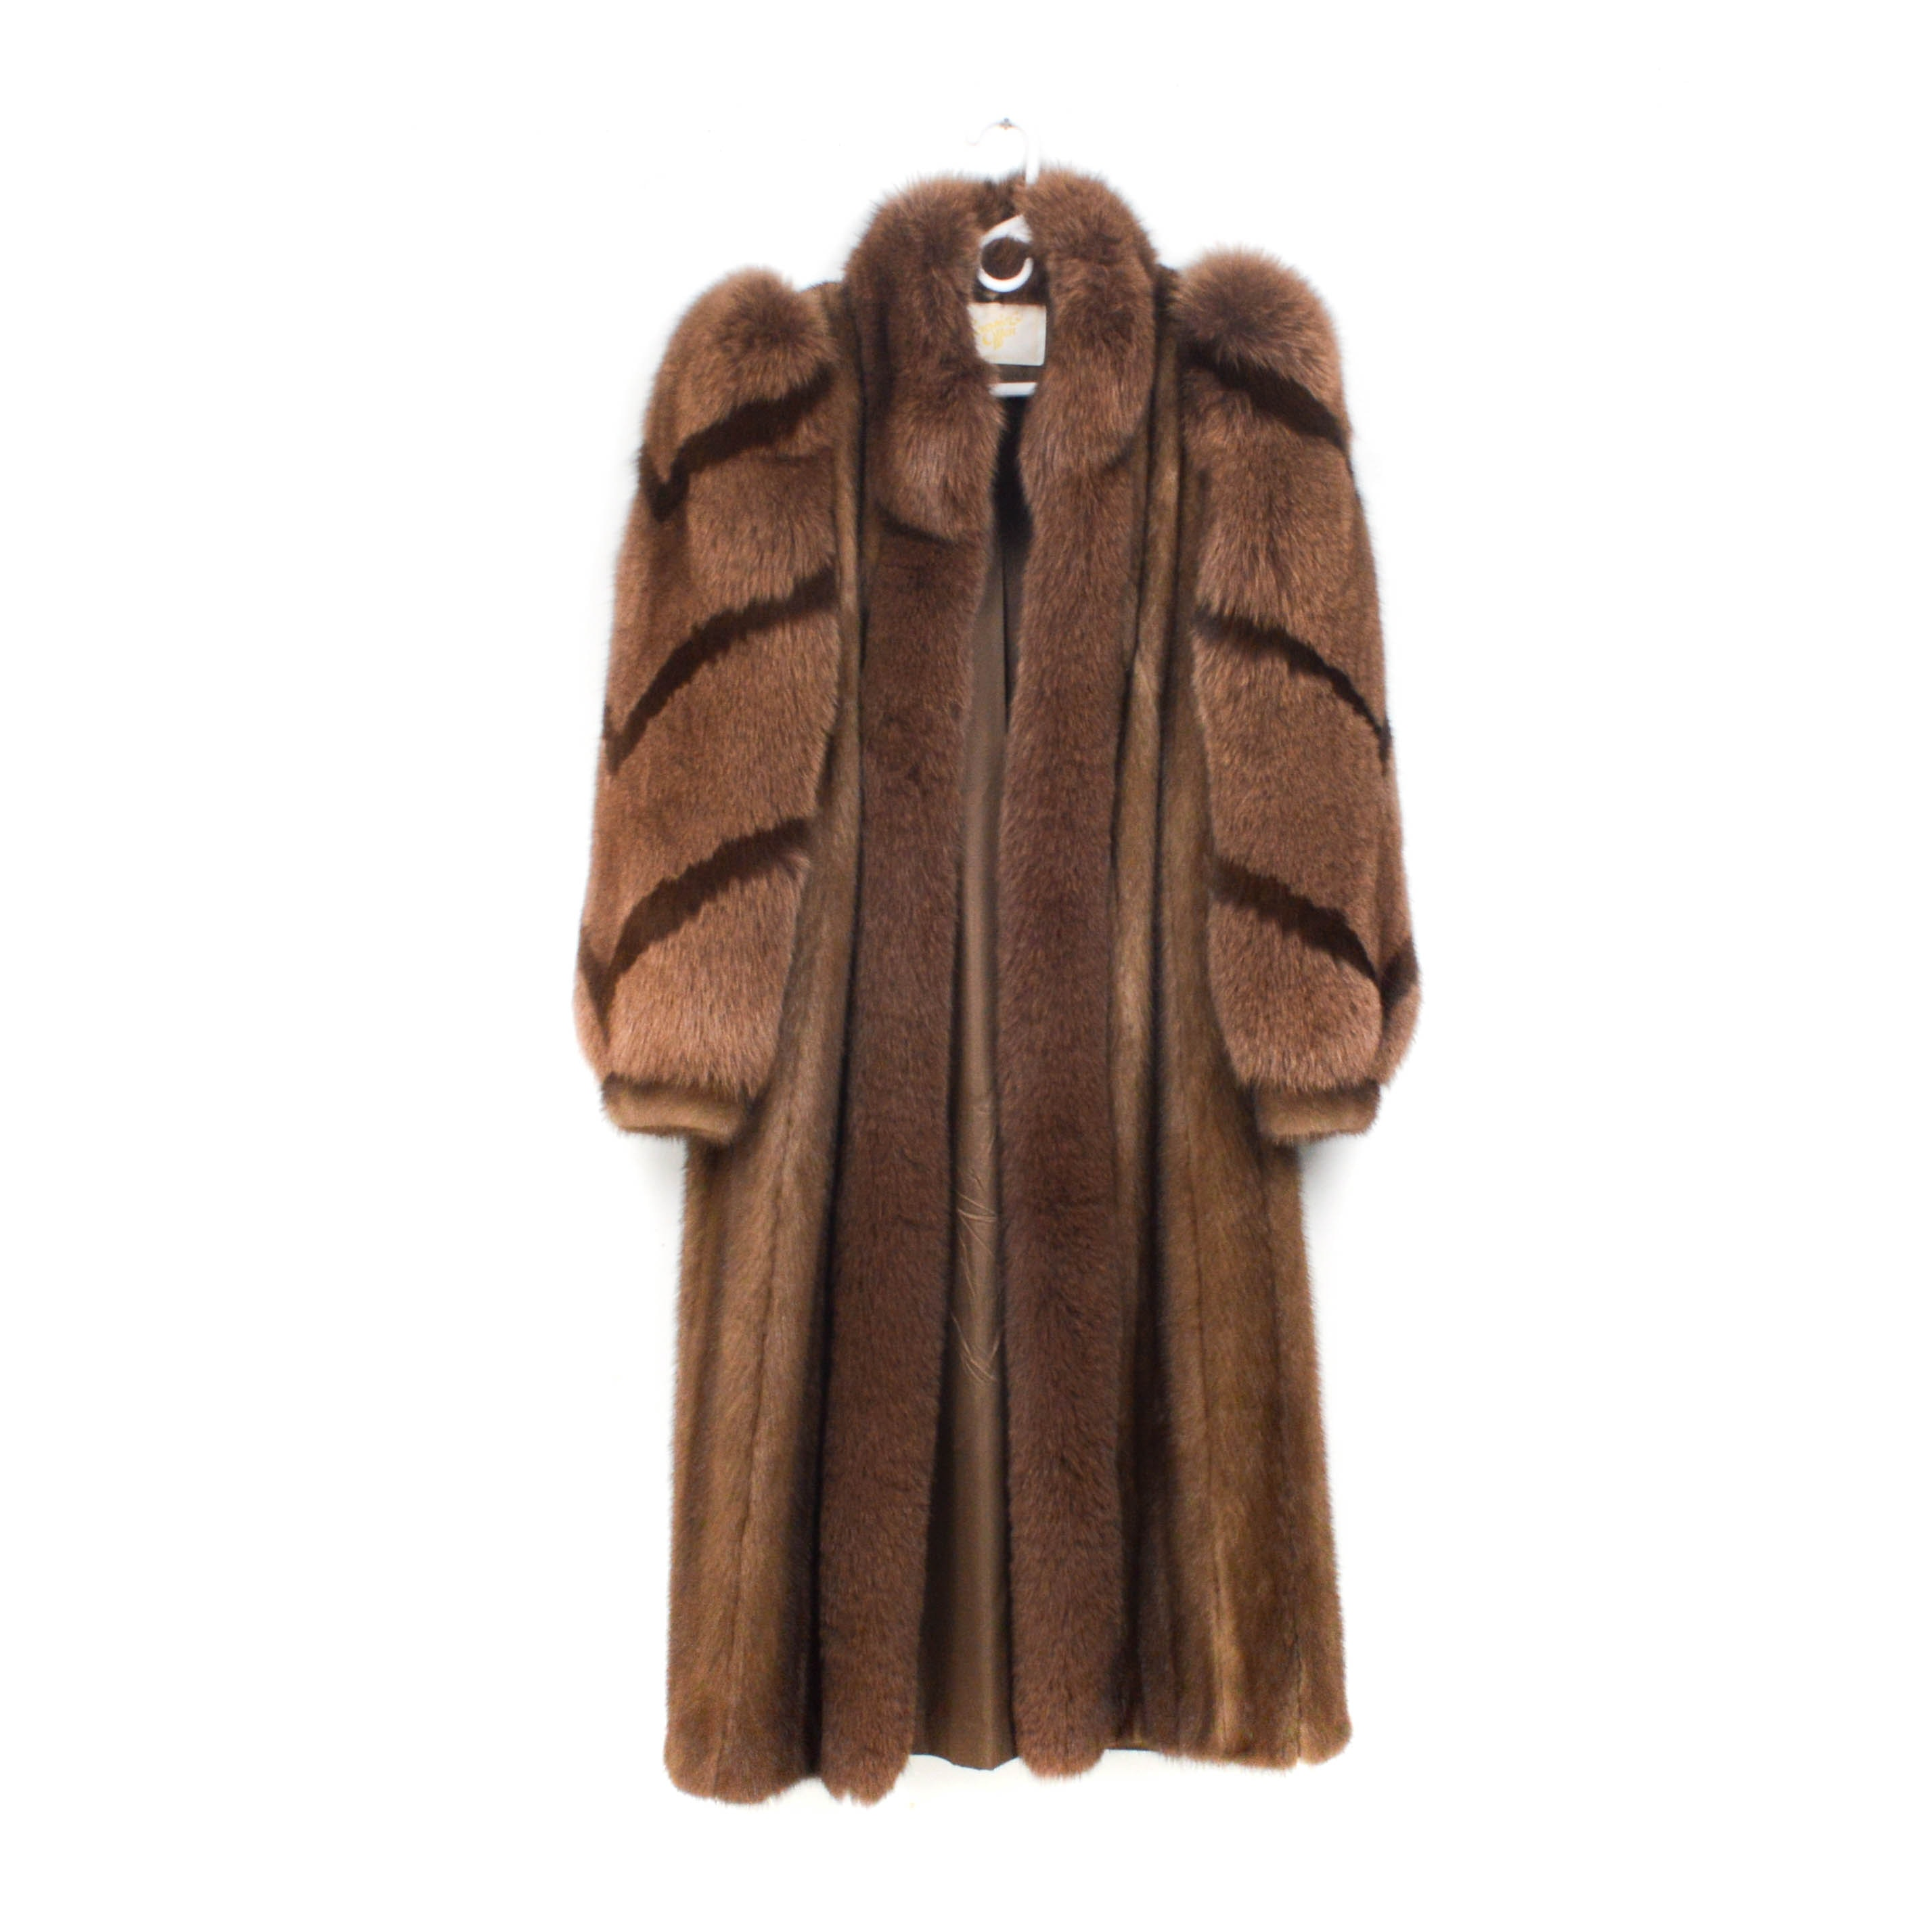 Ranch Mink Fur Full-Length Coat with Fox Fur Sleeves and Collar